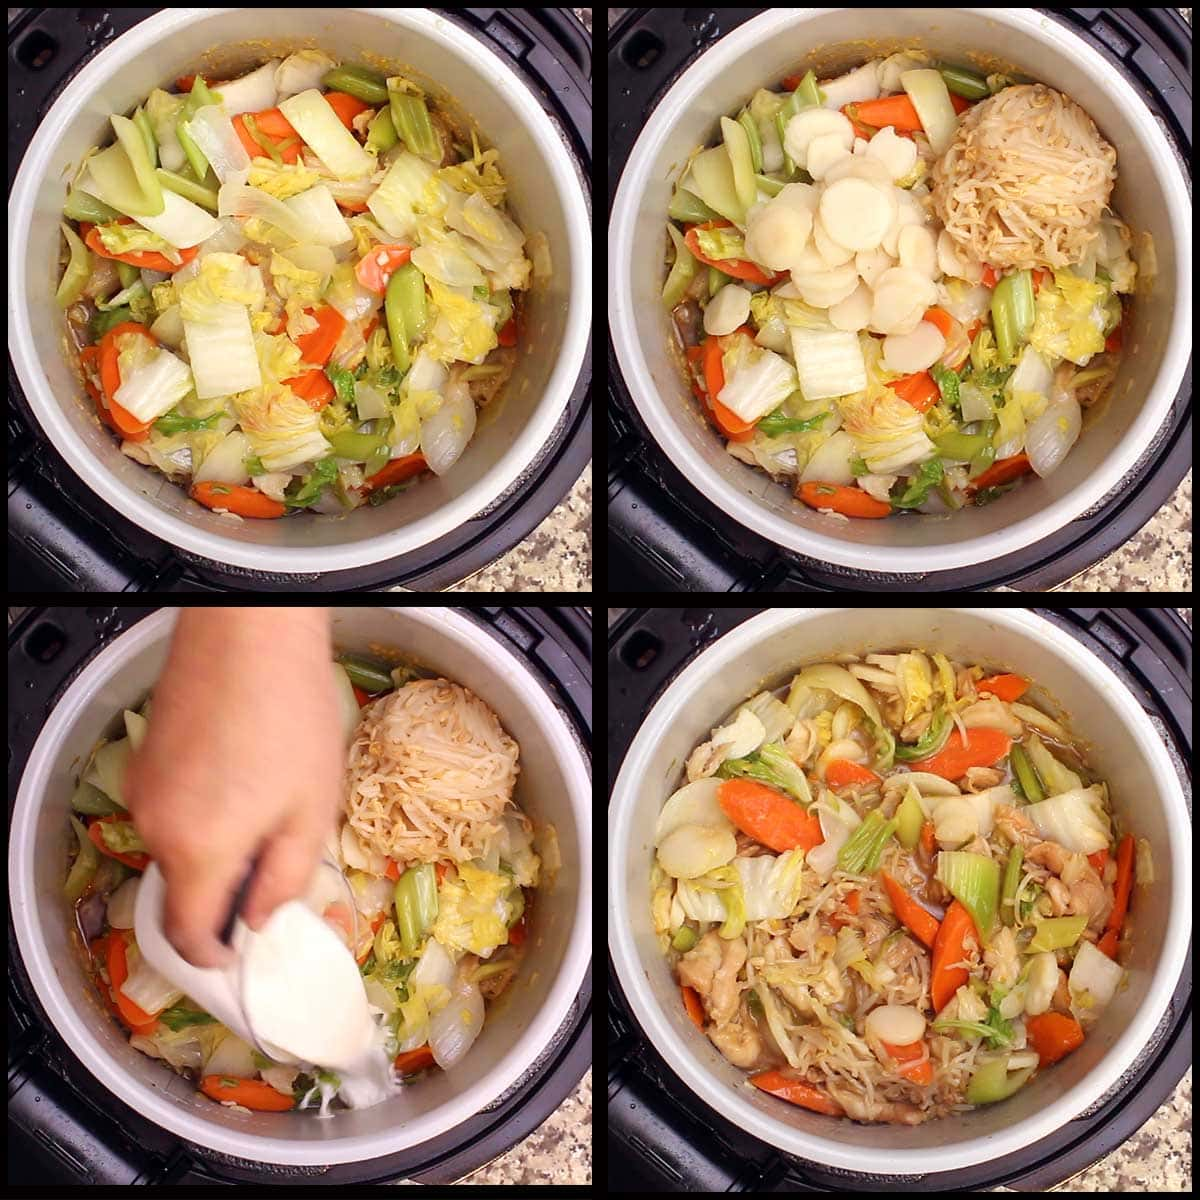 adding in the partially cooked veggies, bean sprouts, water chestnuts, and cornstarch slurry to the inner pot